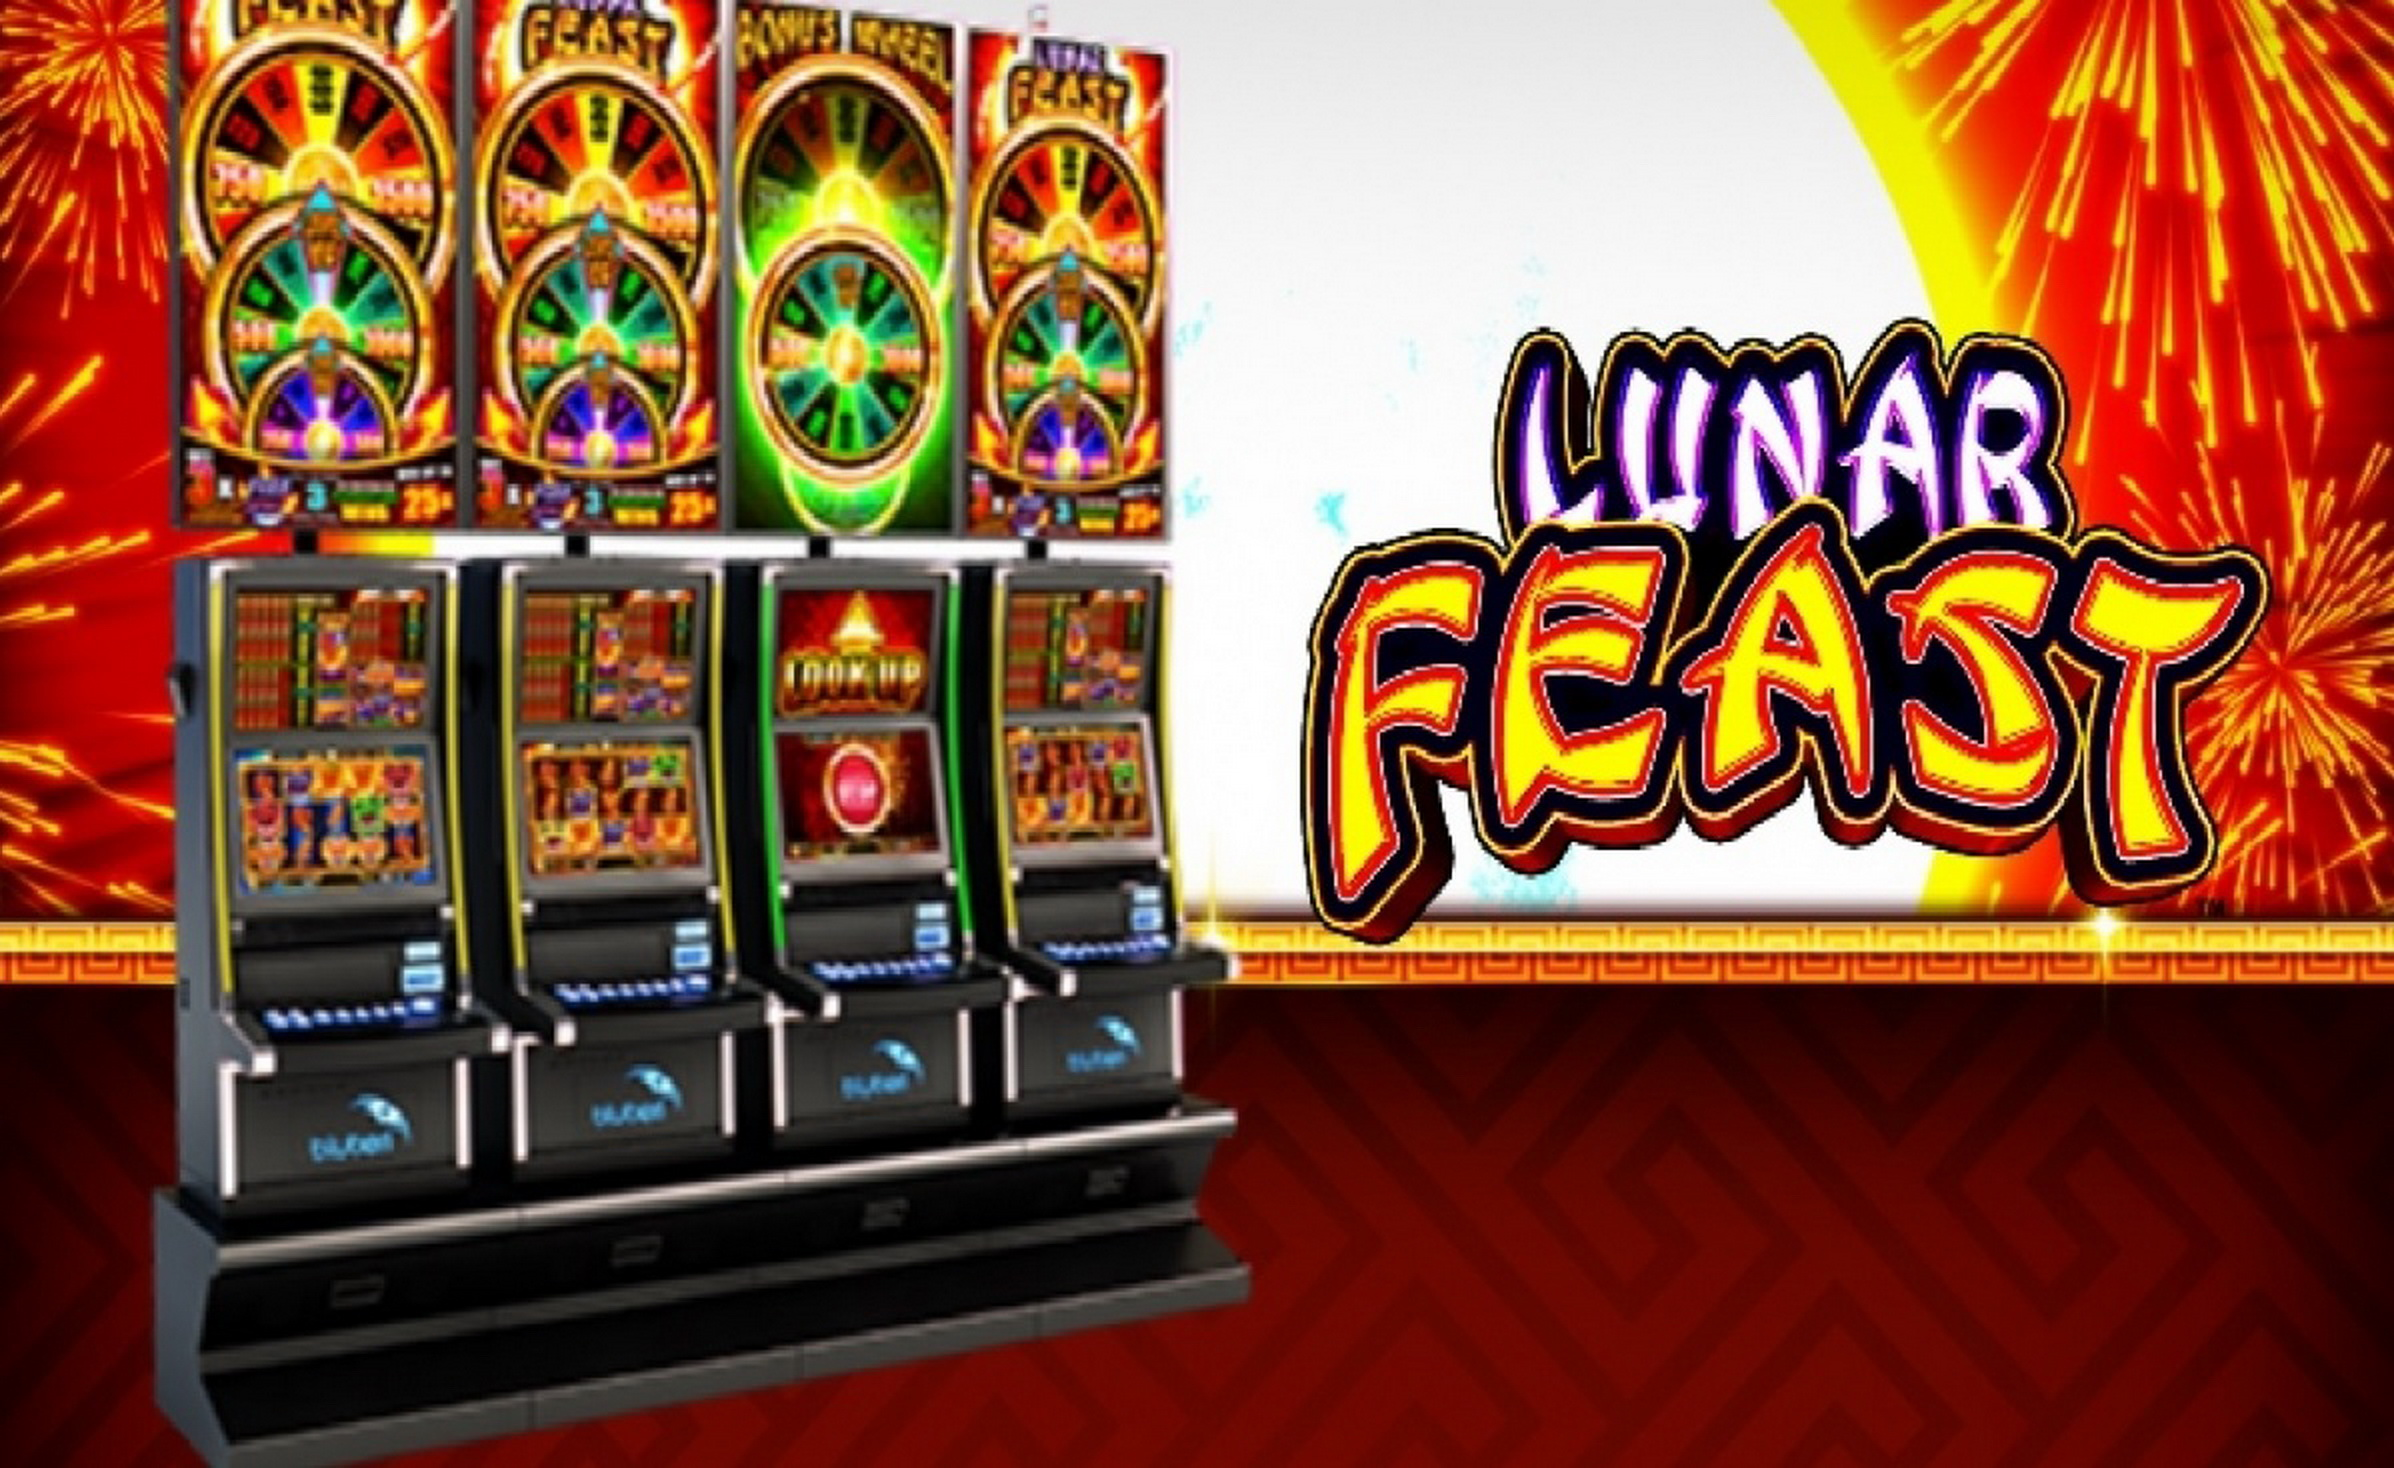 The Lunar Feast Online Slot Demo Game by bluberi